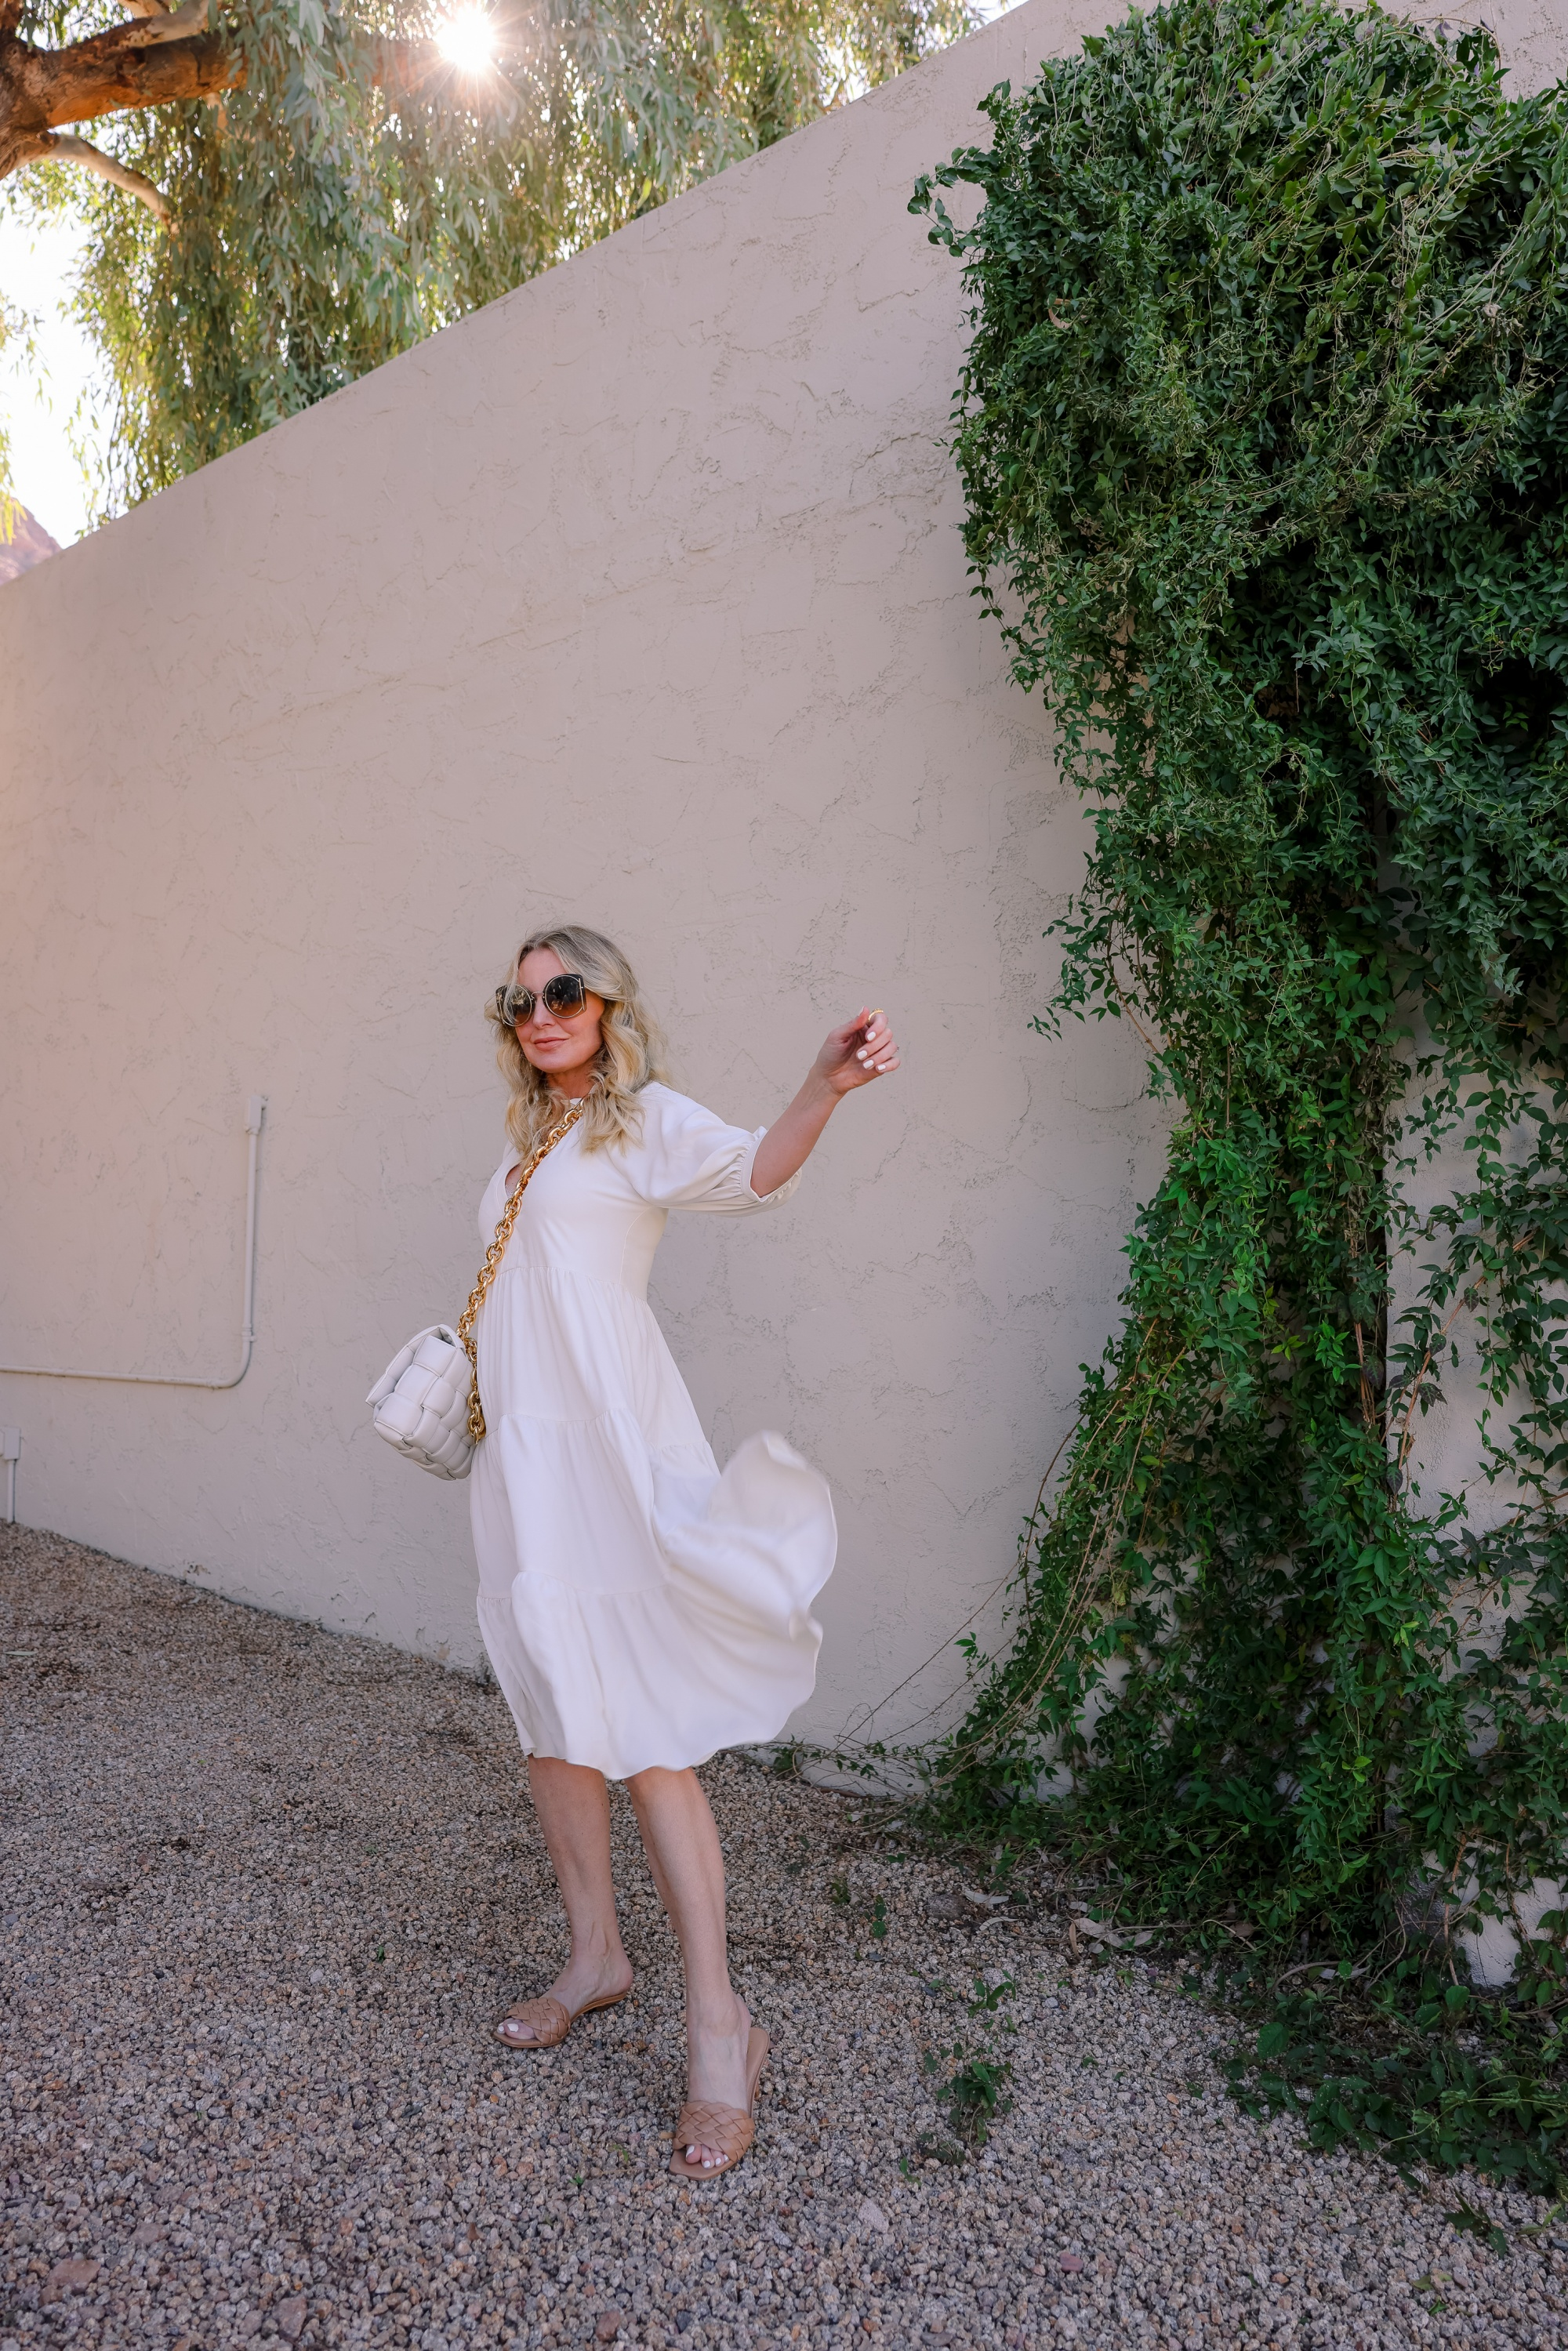 White dresses for spring! Featuring a beautiful white midi length white dress by Amanda Uprichard on fashion over 40 blogger Erin Busbee